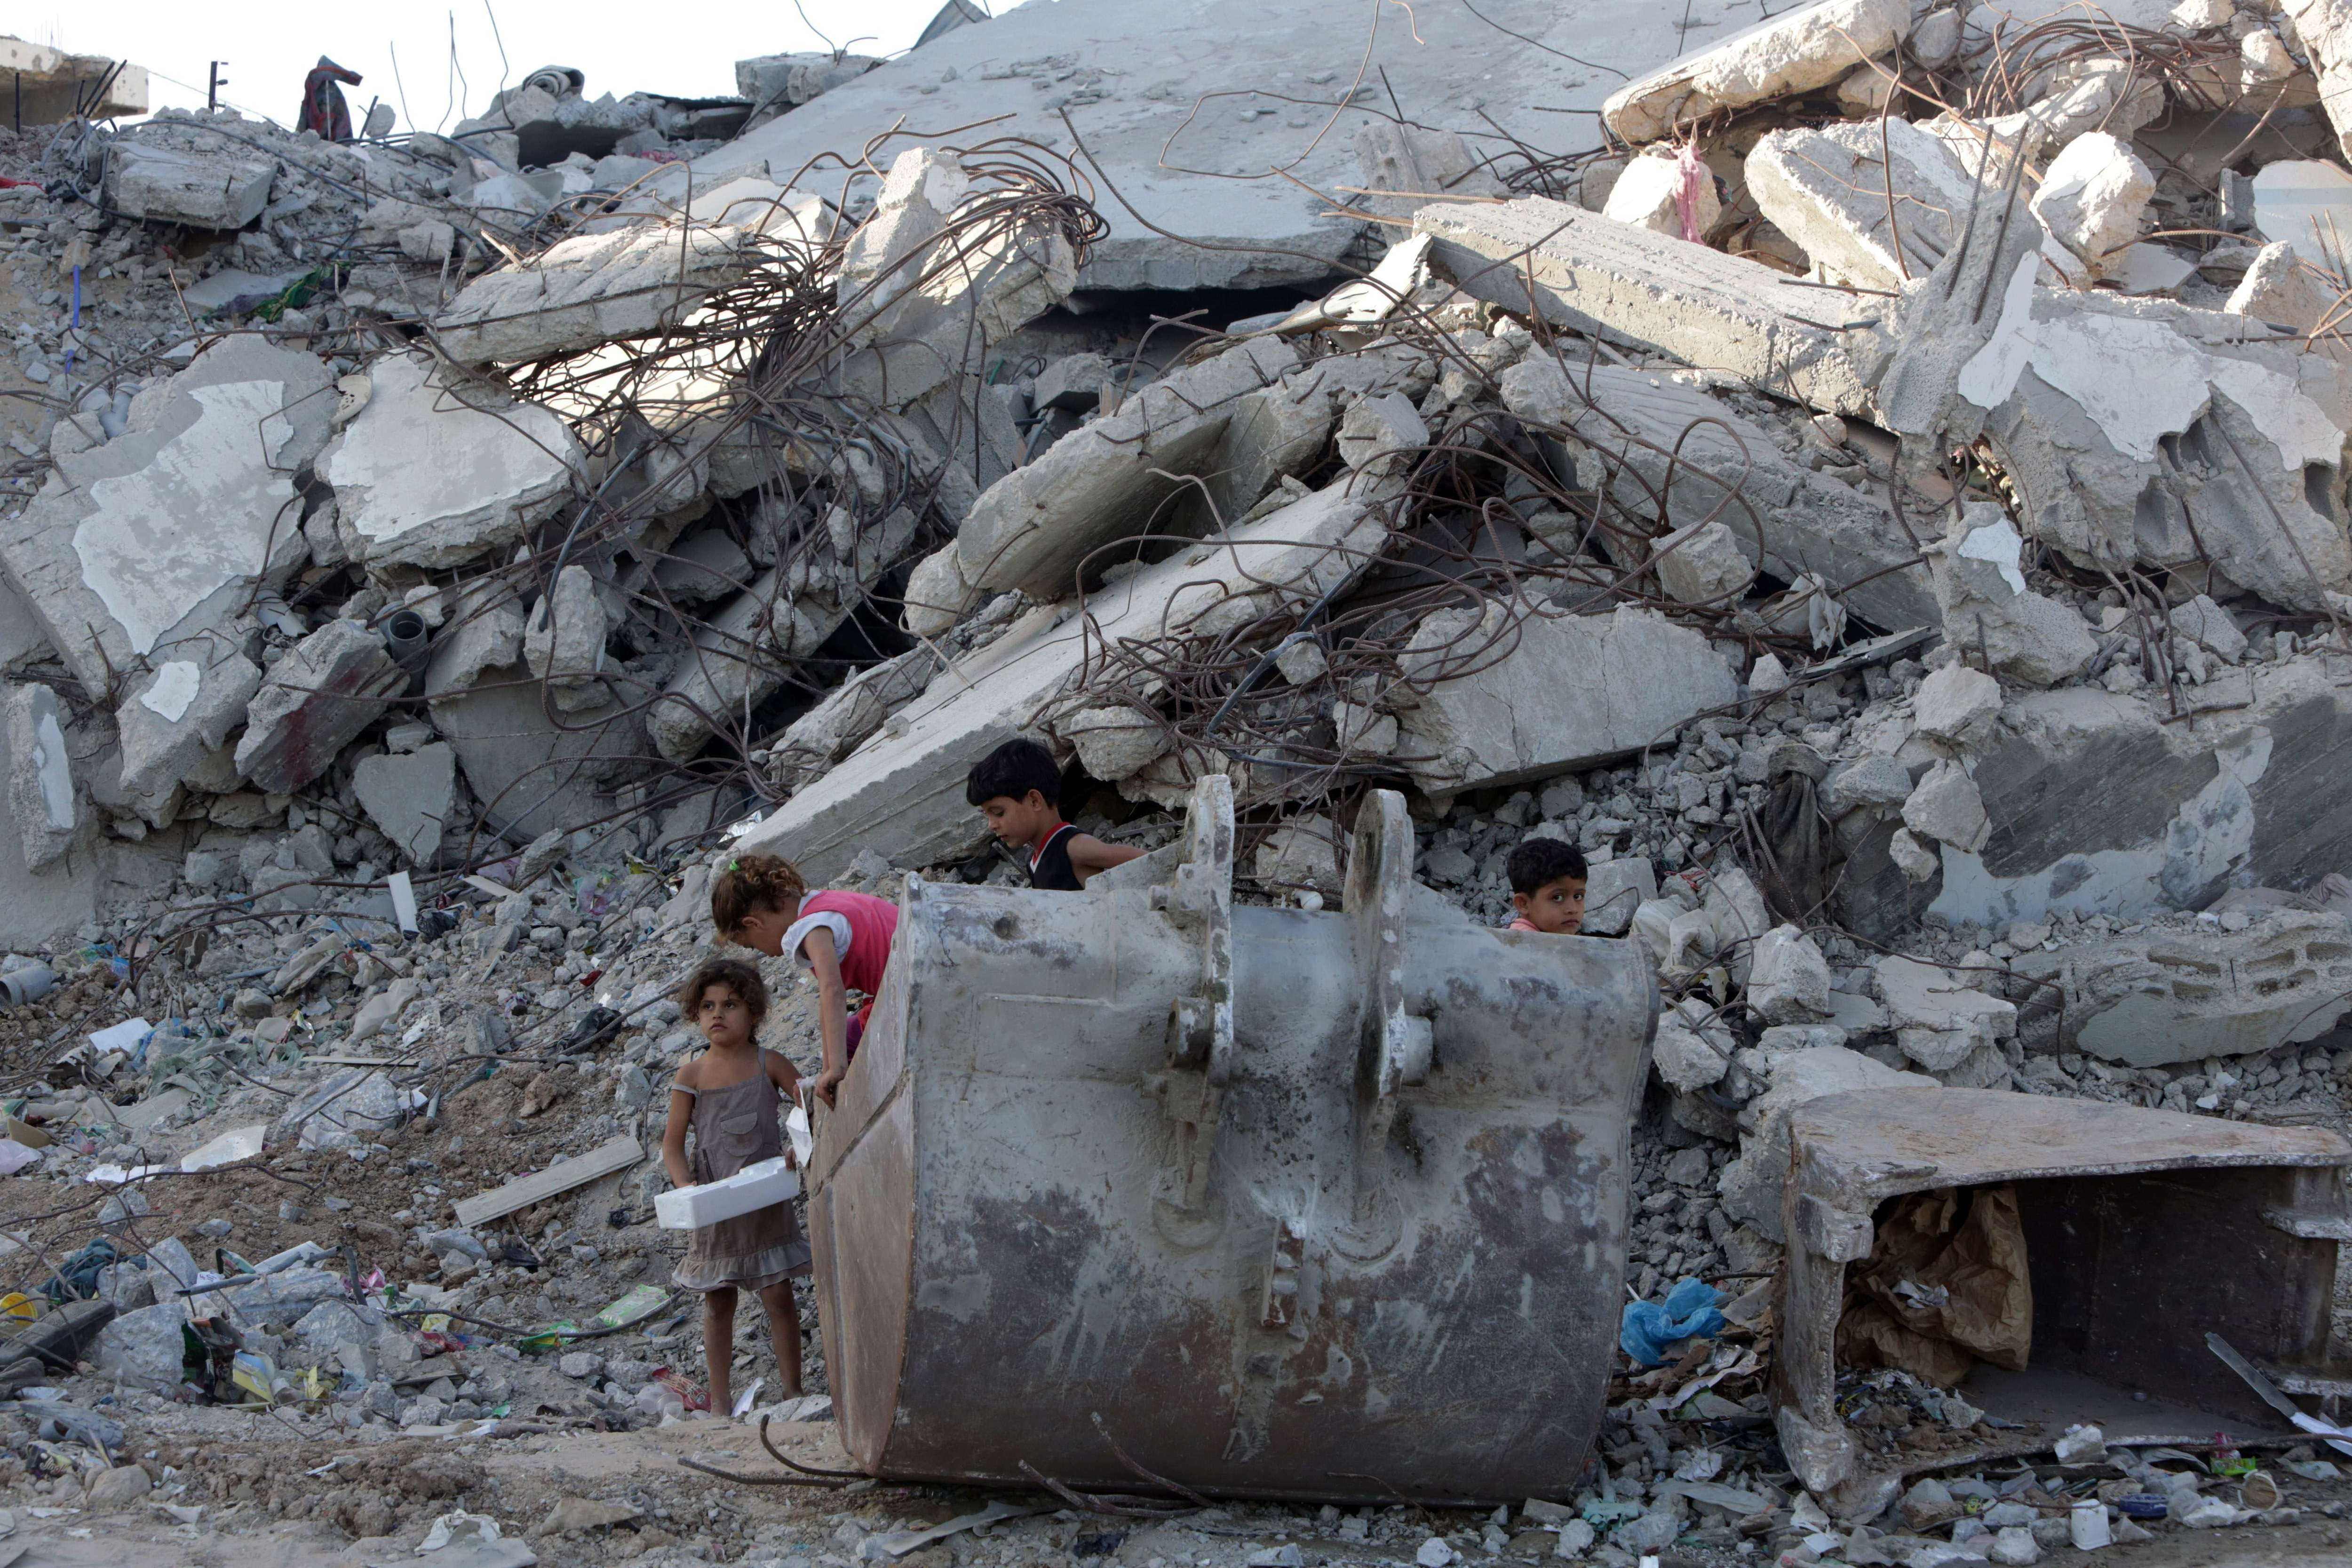 Palestinian children play in the rubble of buildings on June 22, 2015 in Gaza City that were destroyed during 50-day war between Israel and Hamas-militants in the summer of 2014. (Mahmud Hams/AFP/Getty Images)